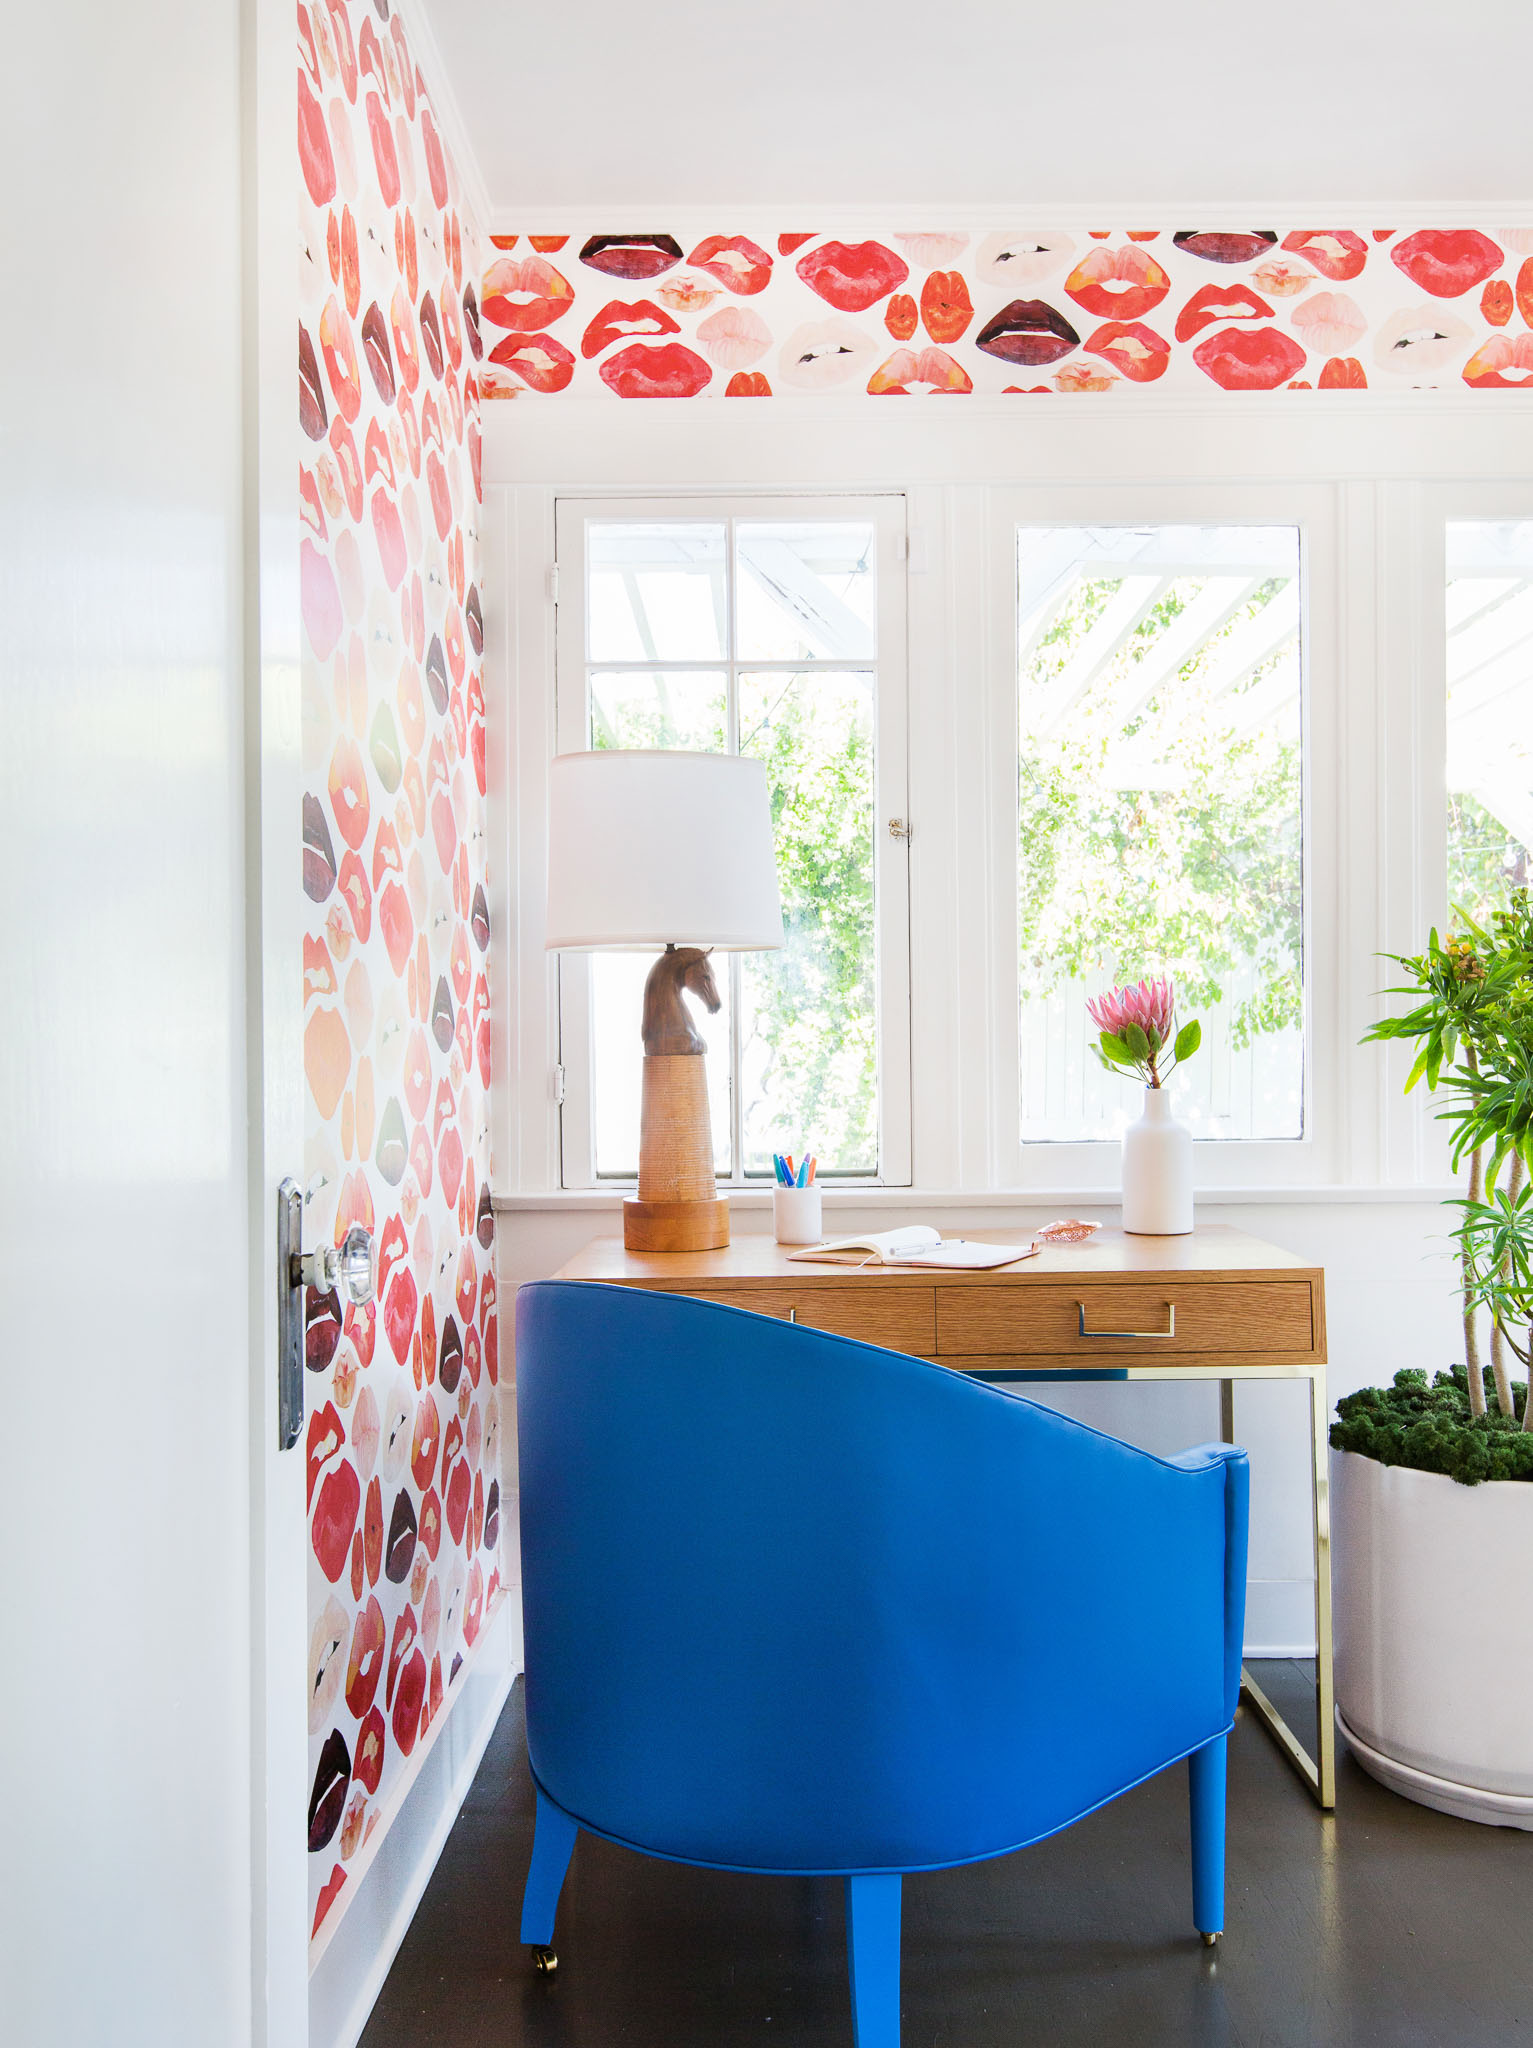 Writer's Home Office Featuring Custom Leather Chair andVibrant Lips Wallpaper. By Stefani Stein Inc.